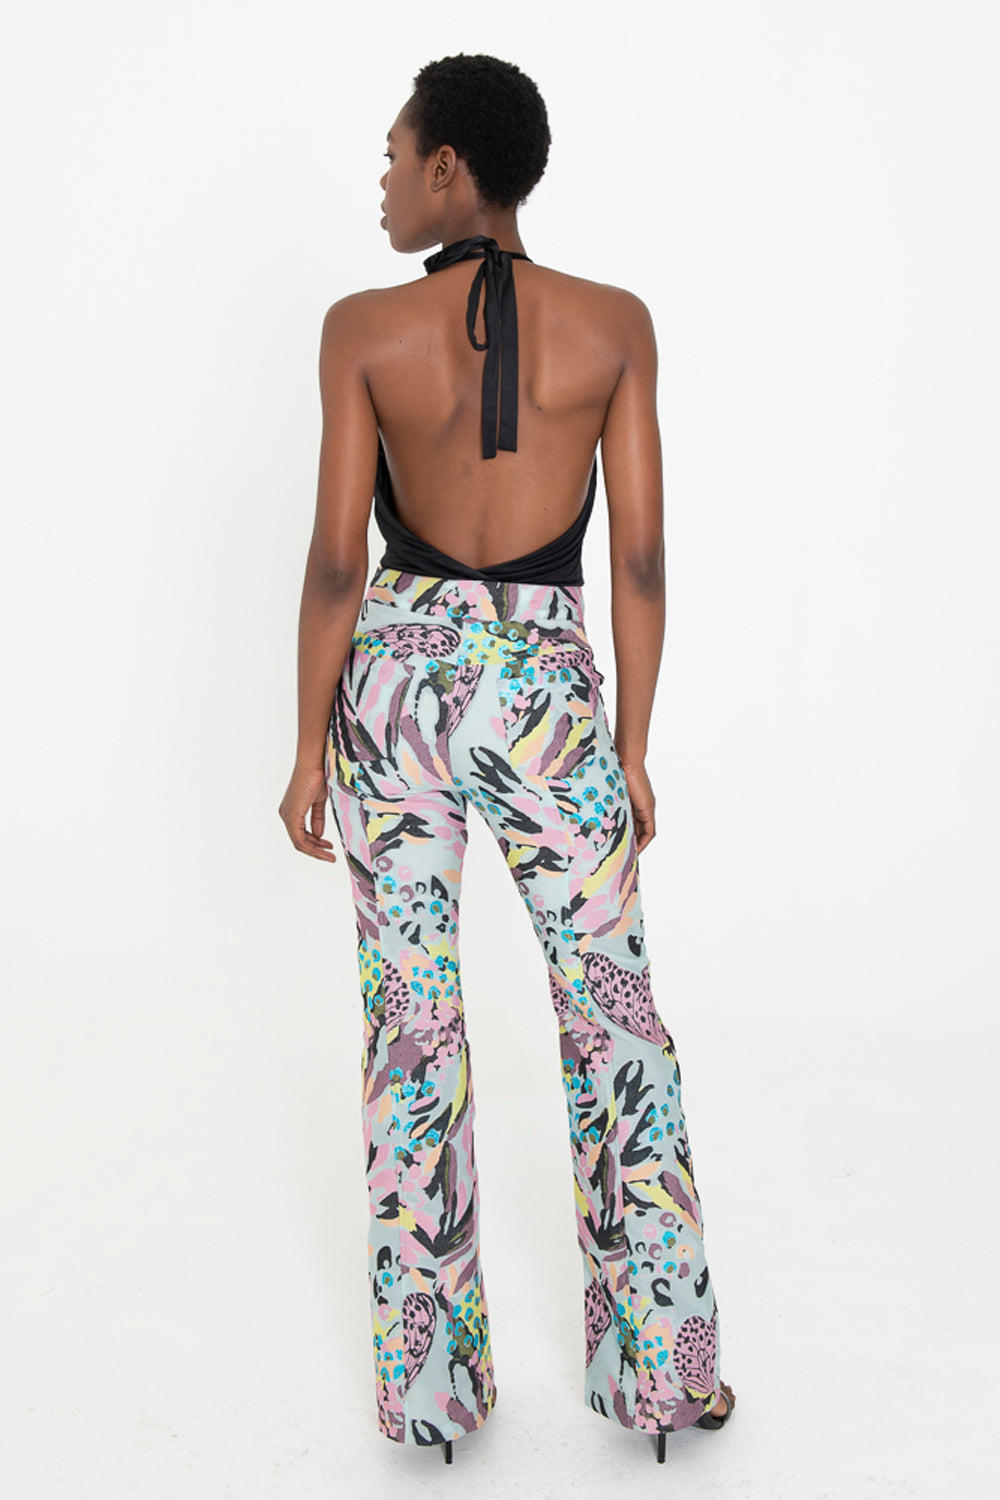 JOS Butterfly Graffiti Pant